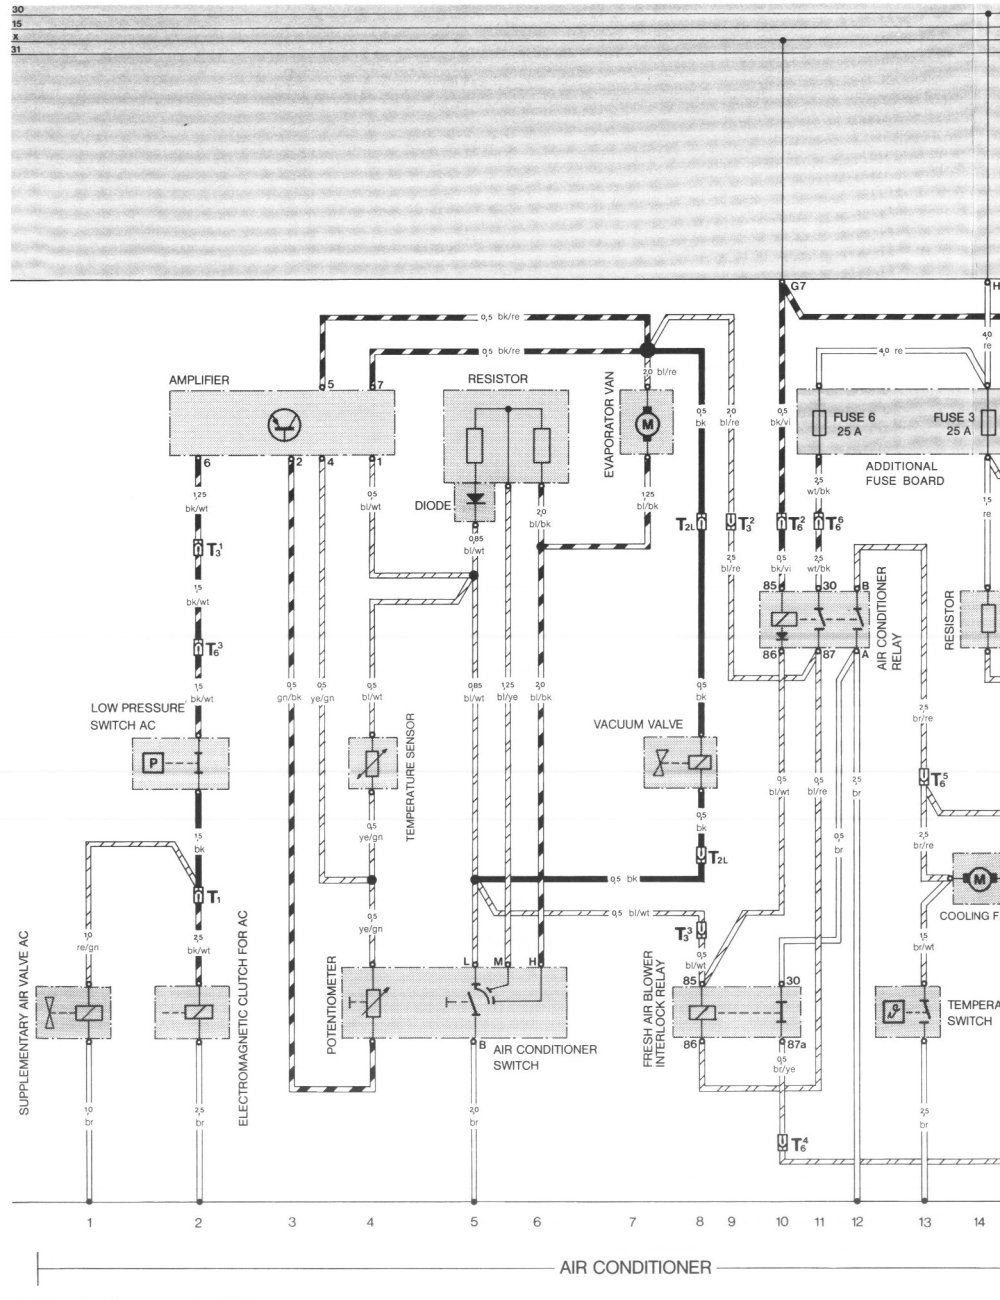 medium resolution of porsche 924 headlight wiring diagram simple wiring schema headlight socket diagram porsche headlight wiring harness diagram